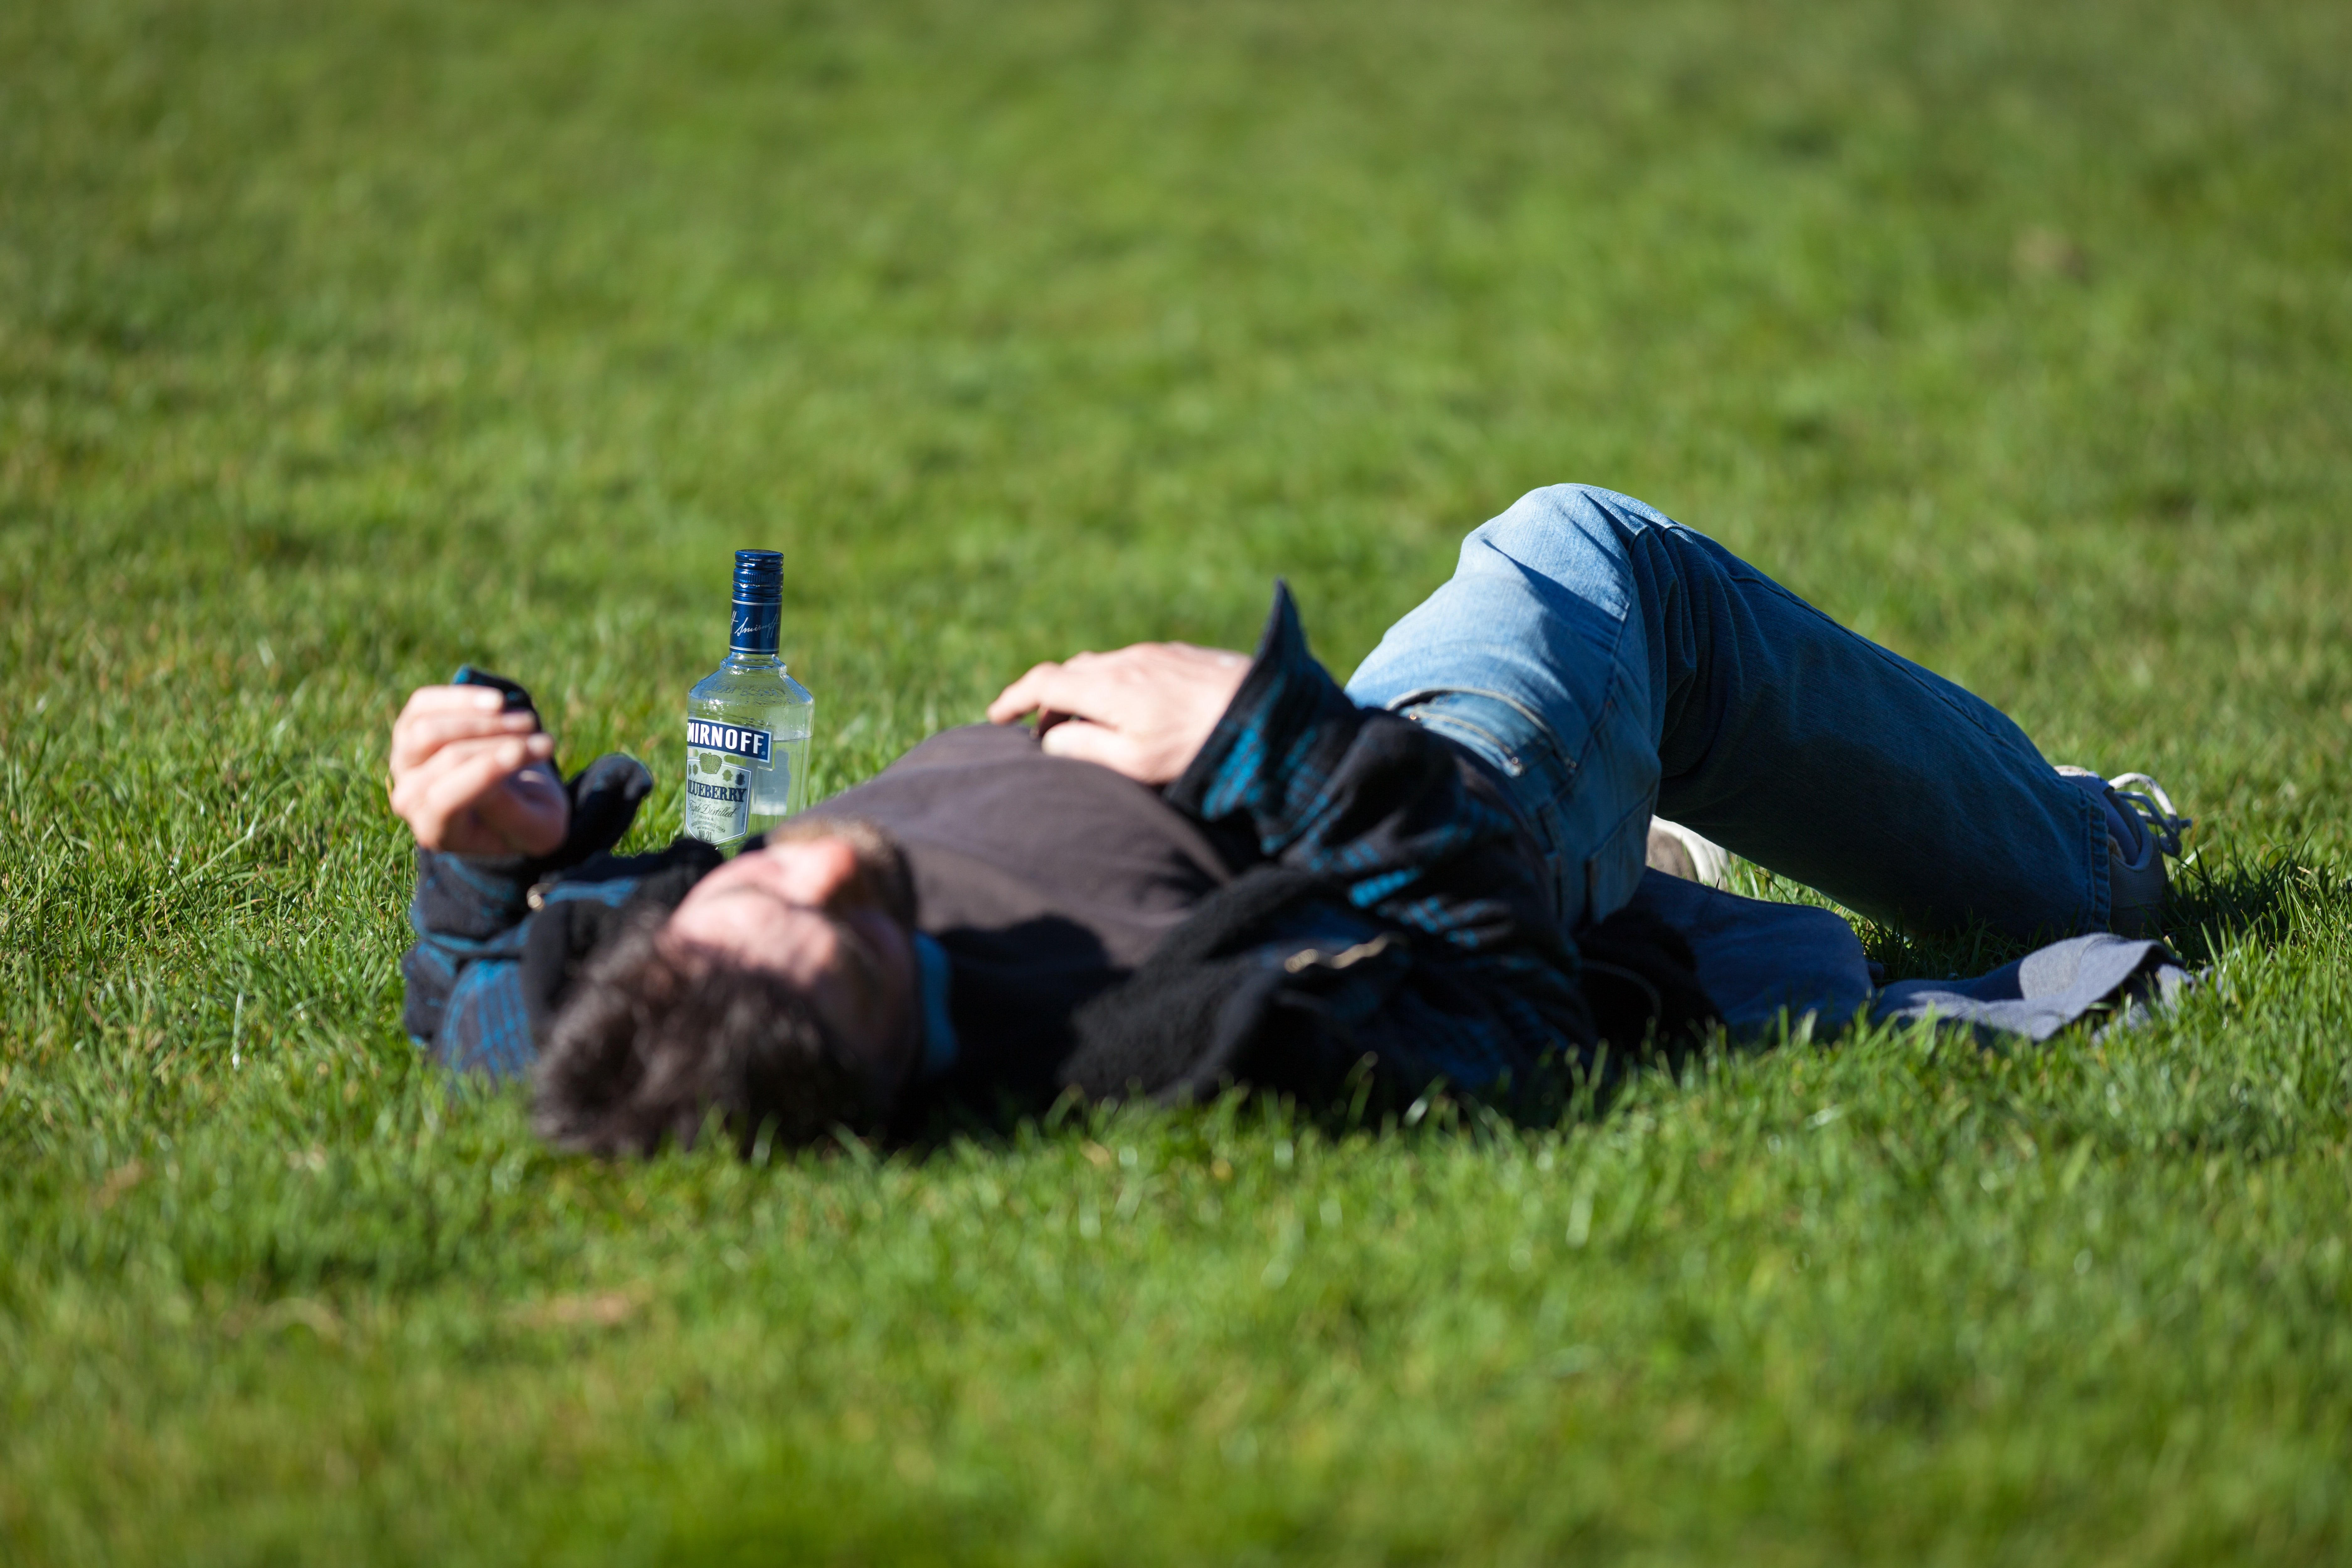 Drunk man passed out in a park. | Source: Unsplash